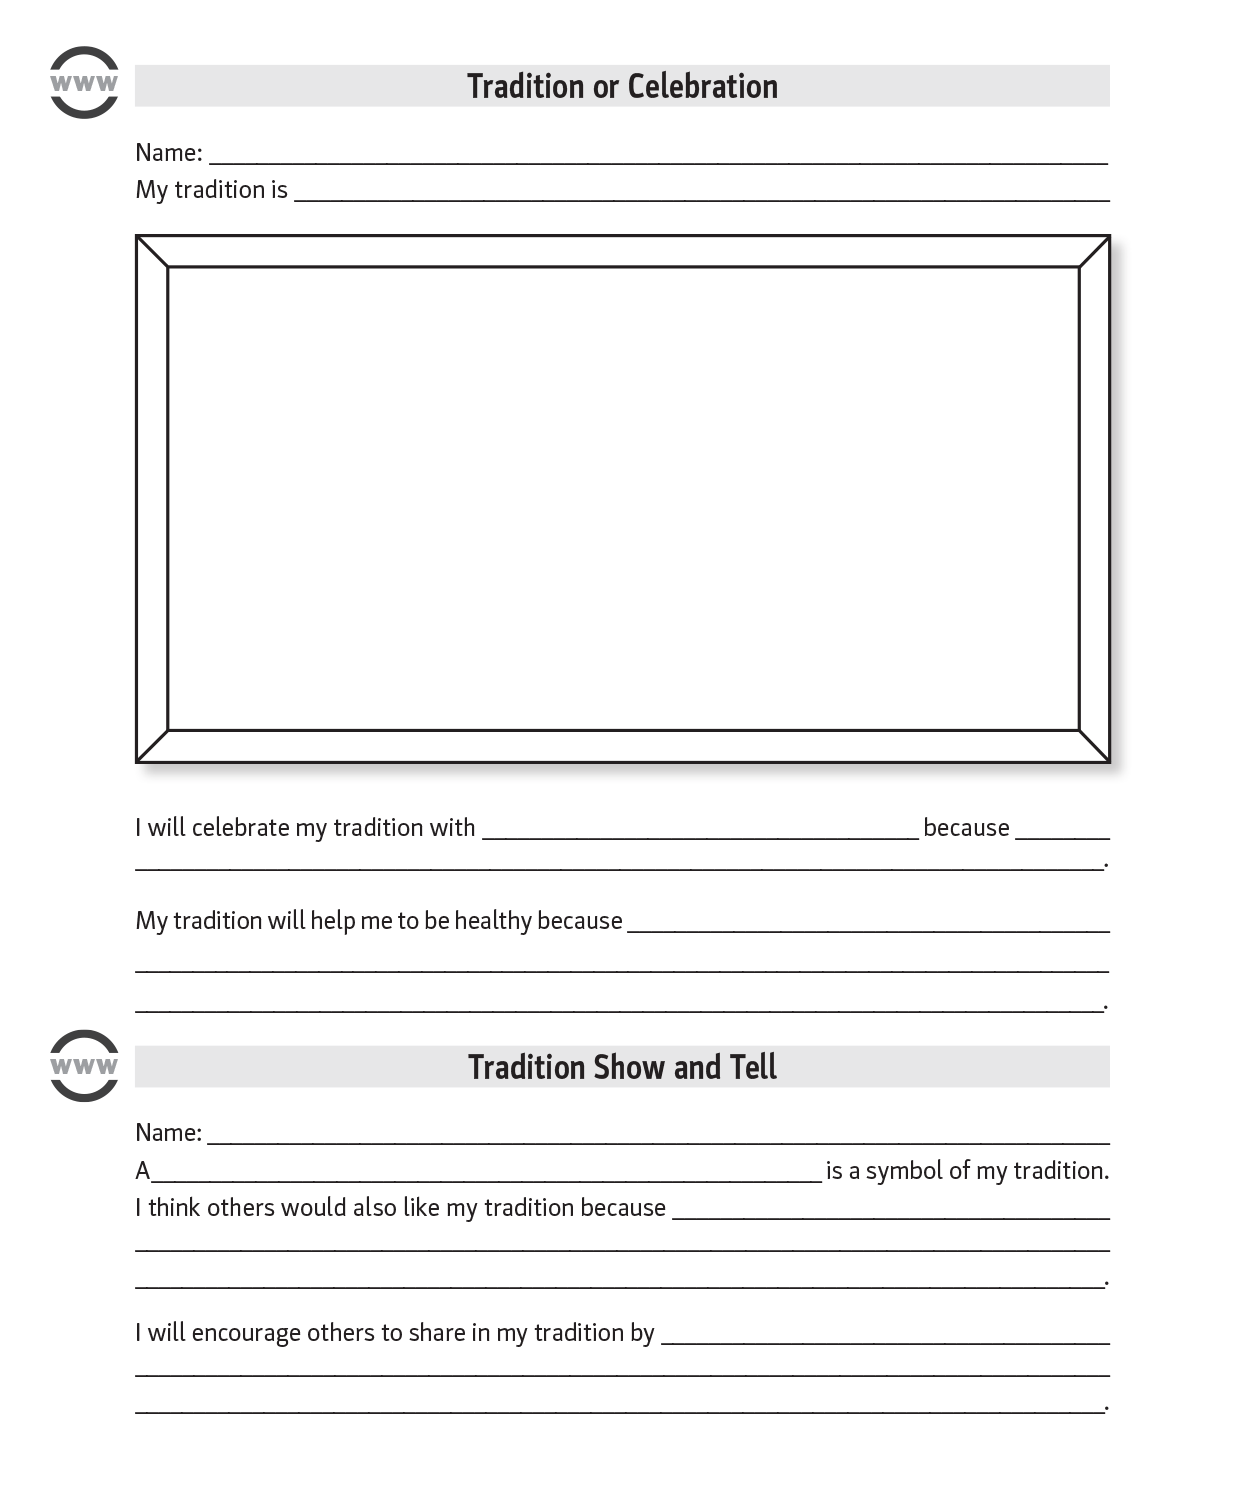 Tradition Show and Tell worksheet